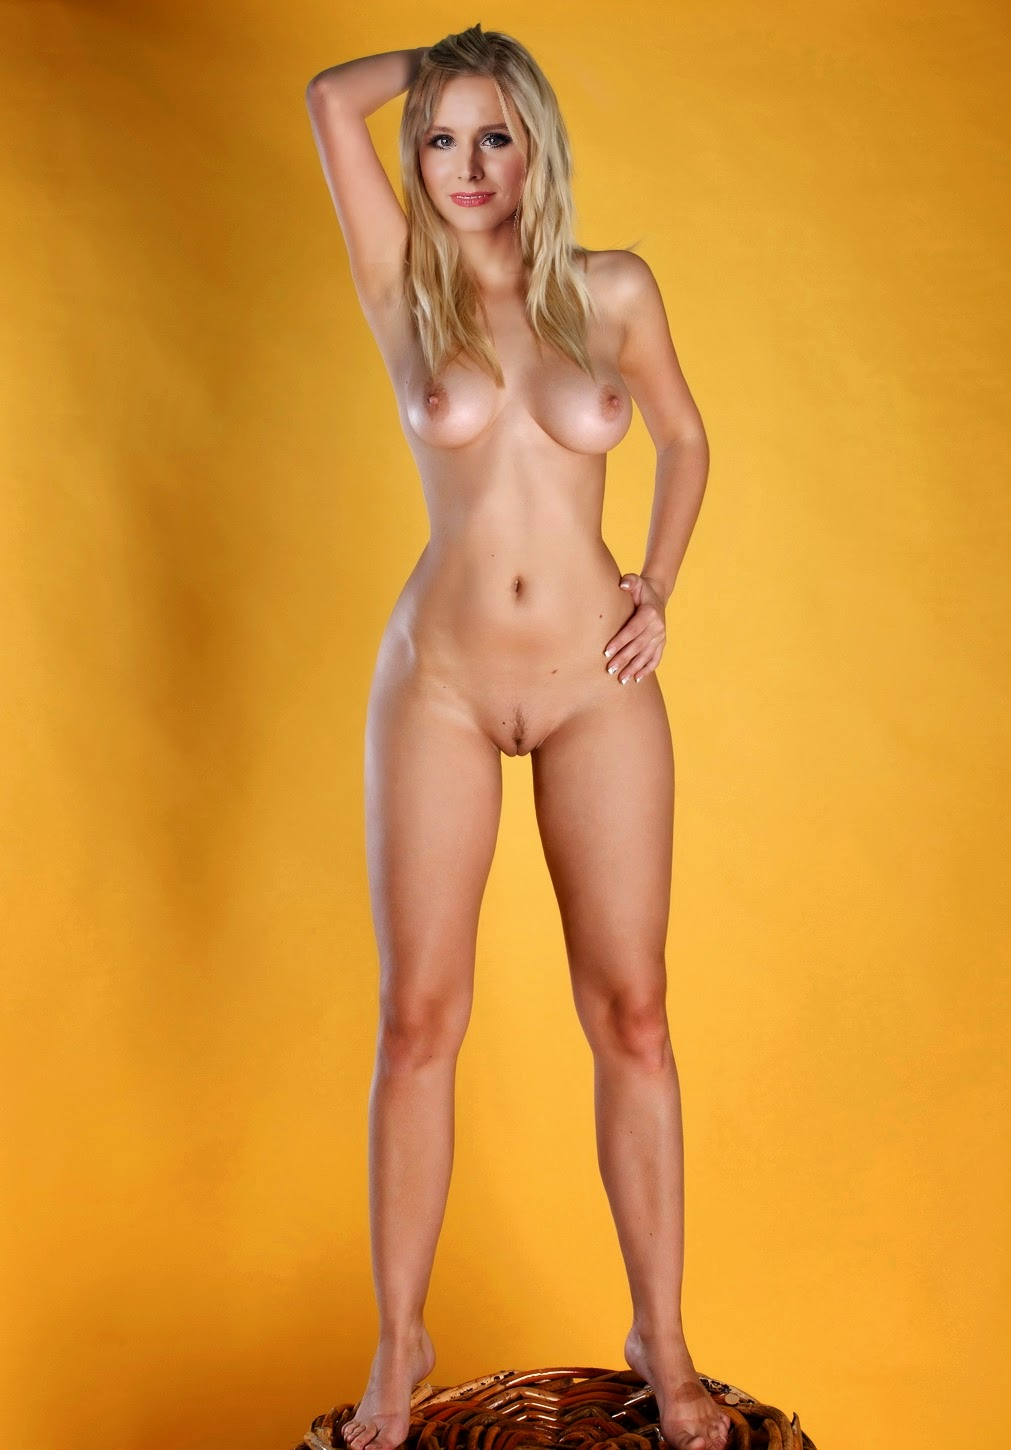 kristin bell nude photos